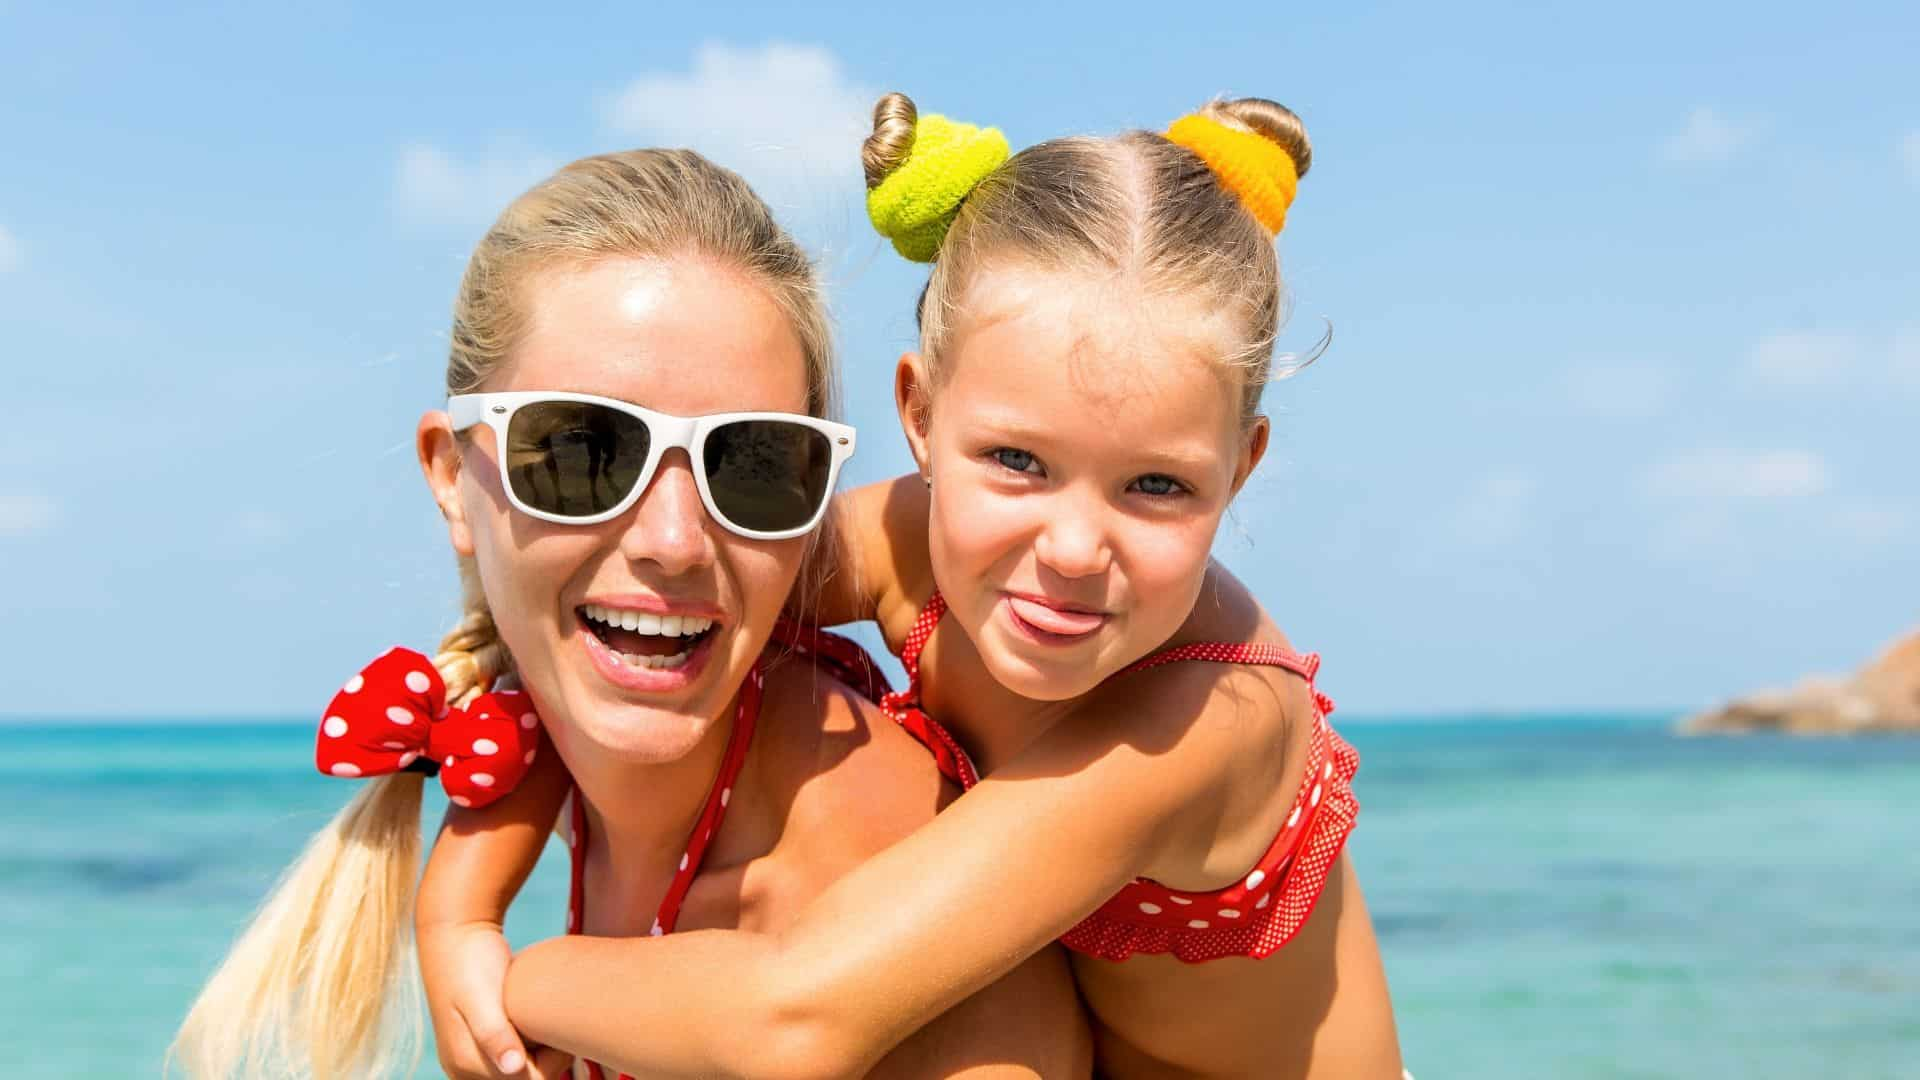 Fun Beach Activities Your Whole Family Will Love